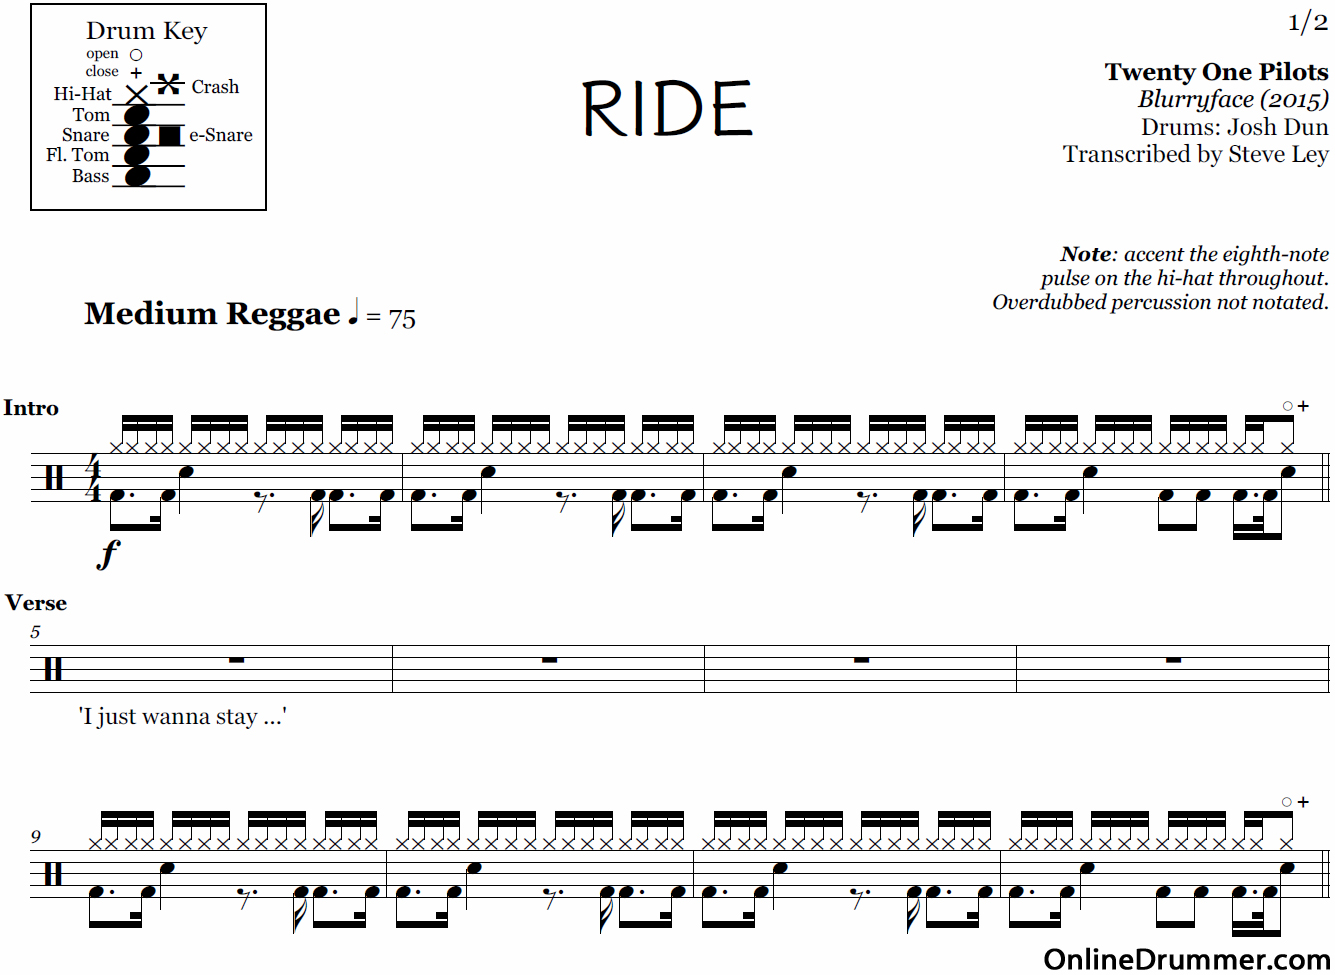 Ride Twenty One Pilots Drum Sheet Music